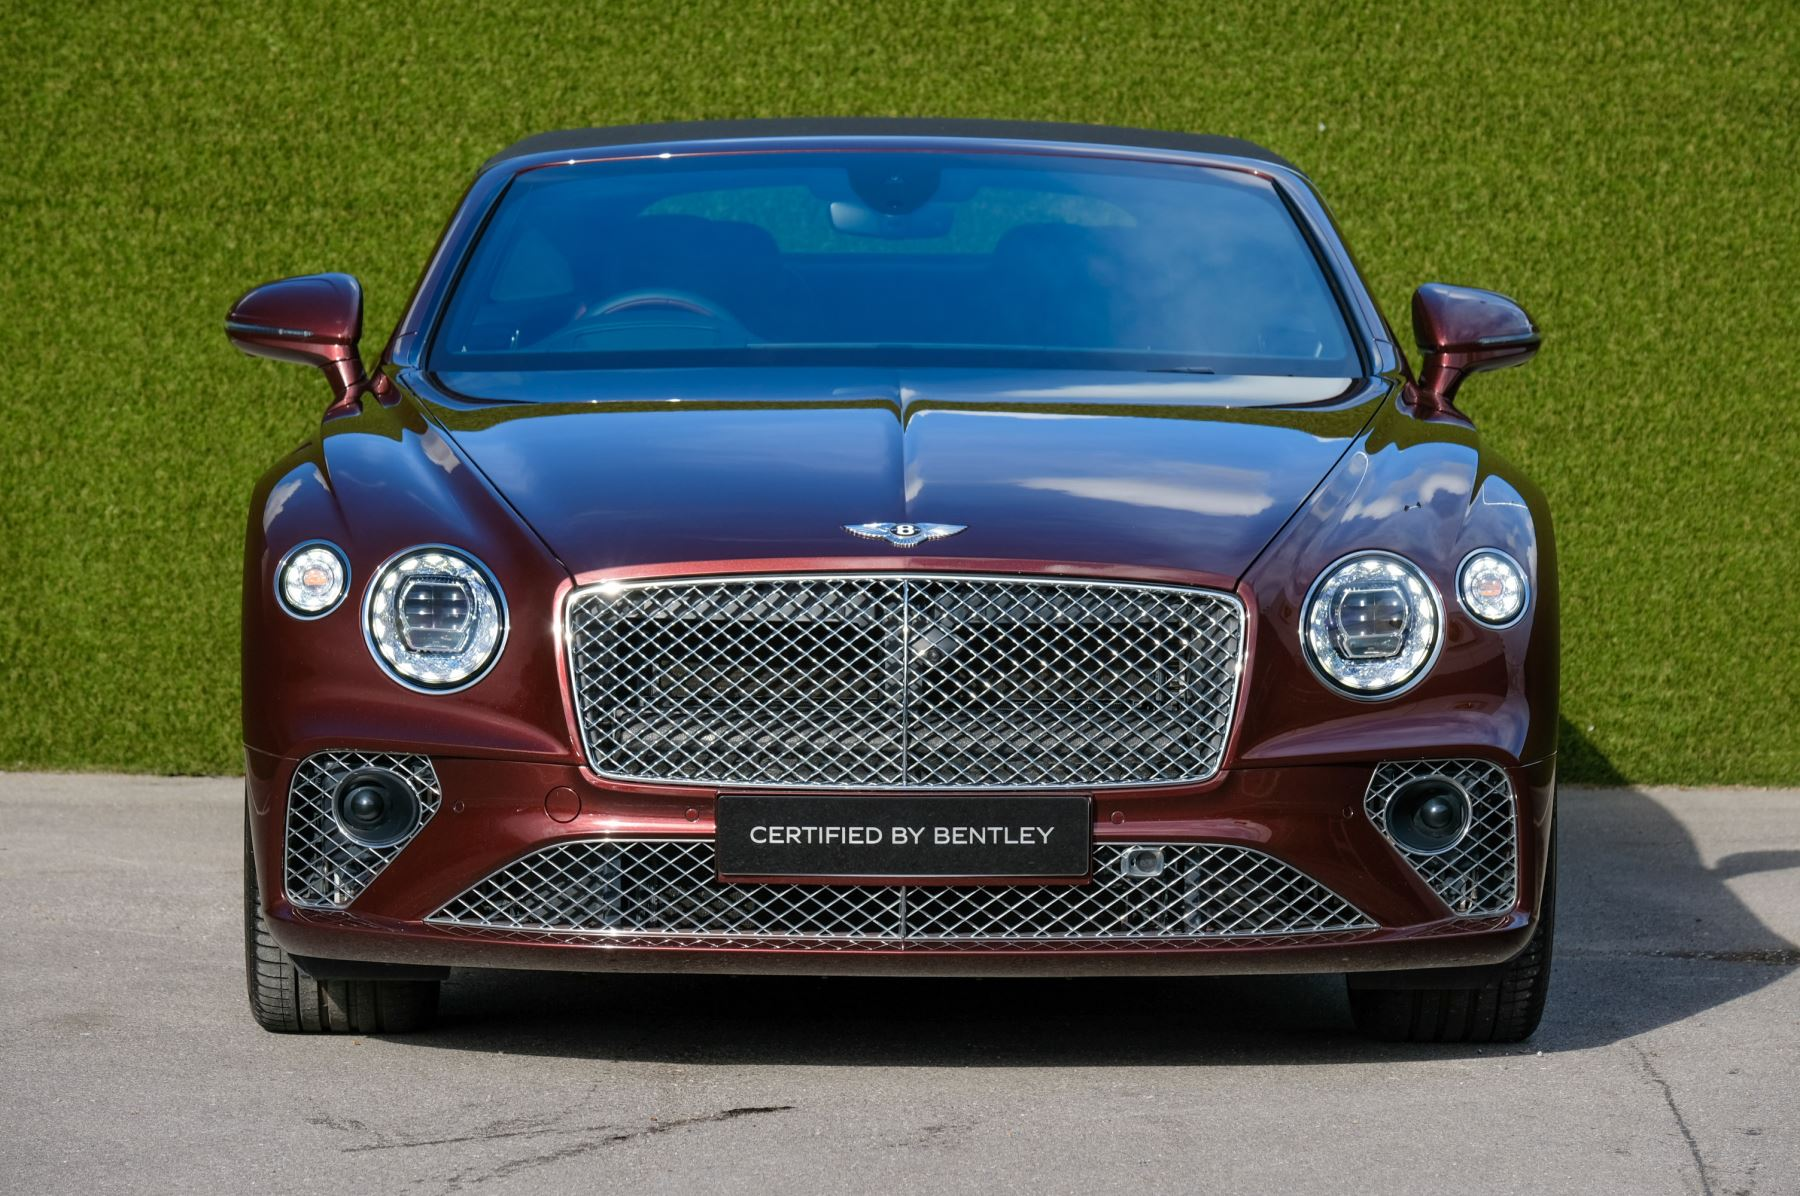 Bentley Continental GTC 6.0 W12 - First Edition Specification image 2